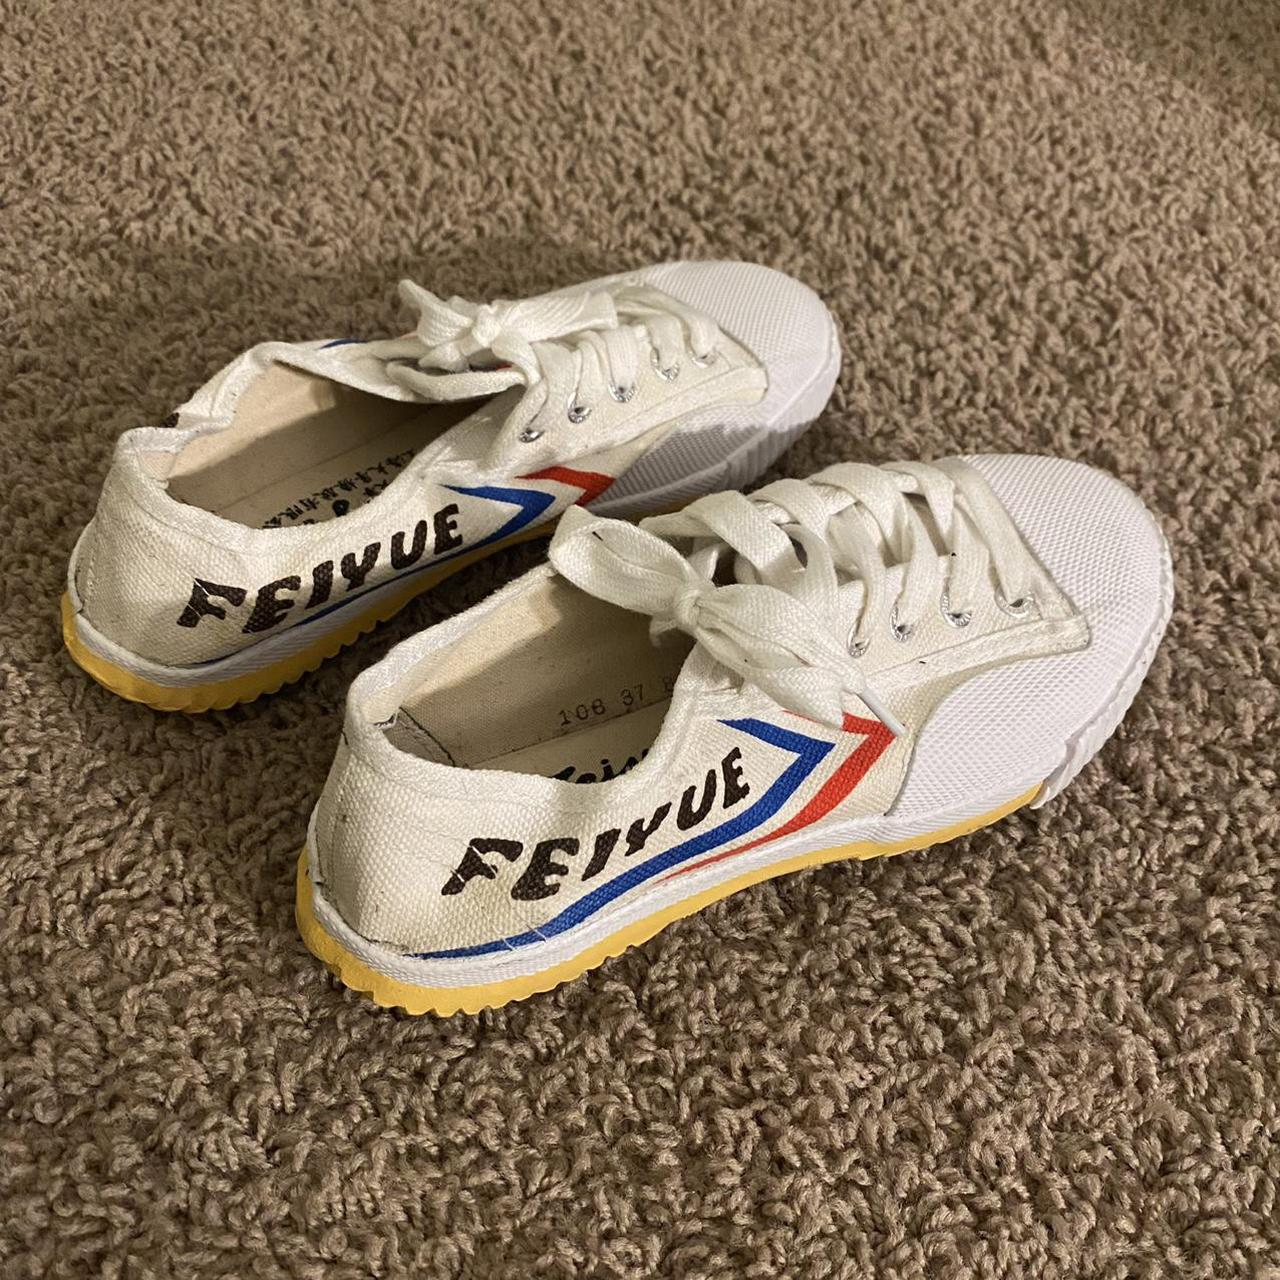 Product Image 1 - Feiyue sneakers  Super comfy  Women size 7  Tagged